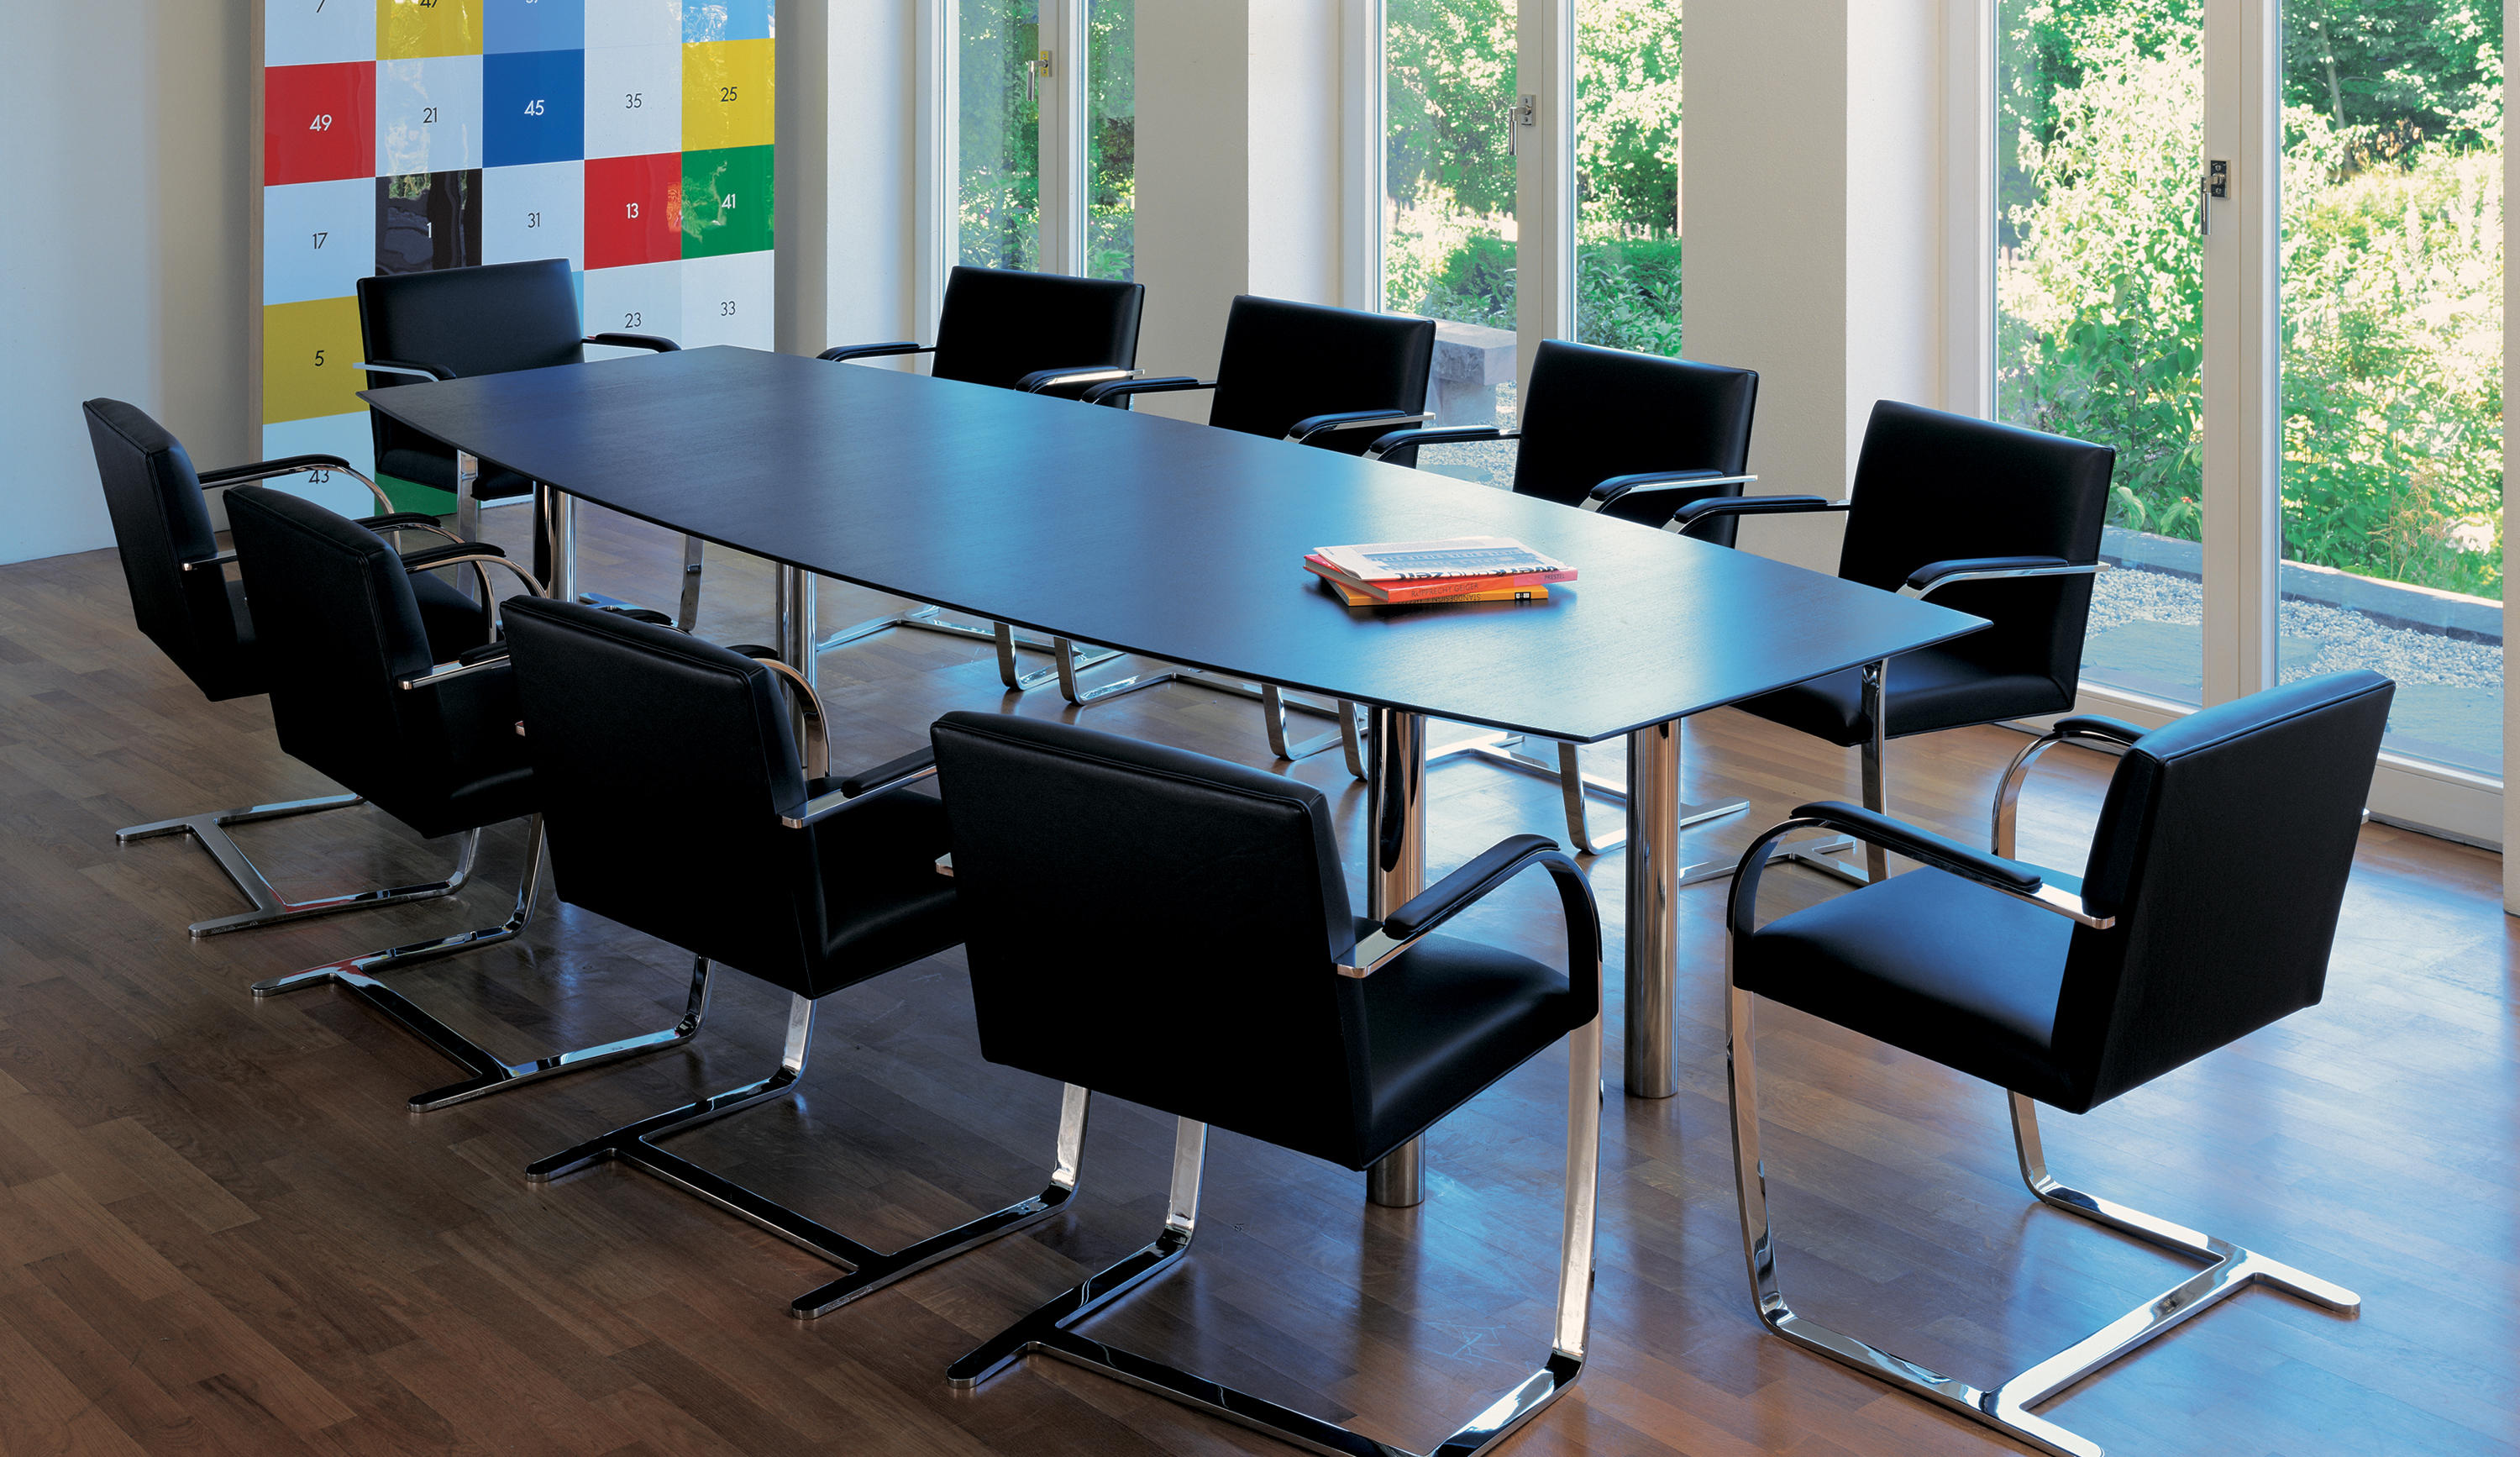 Table Florence Knoll Prix florence knoll lounge canapé 3 places | architonic